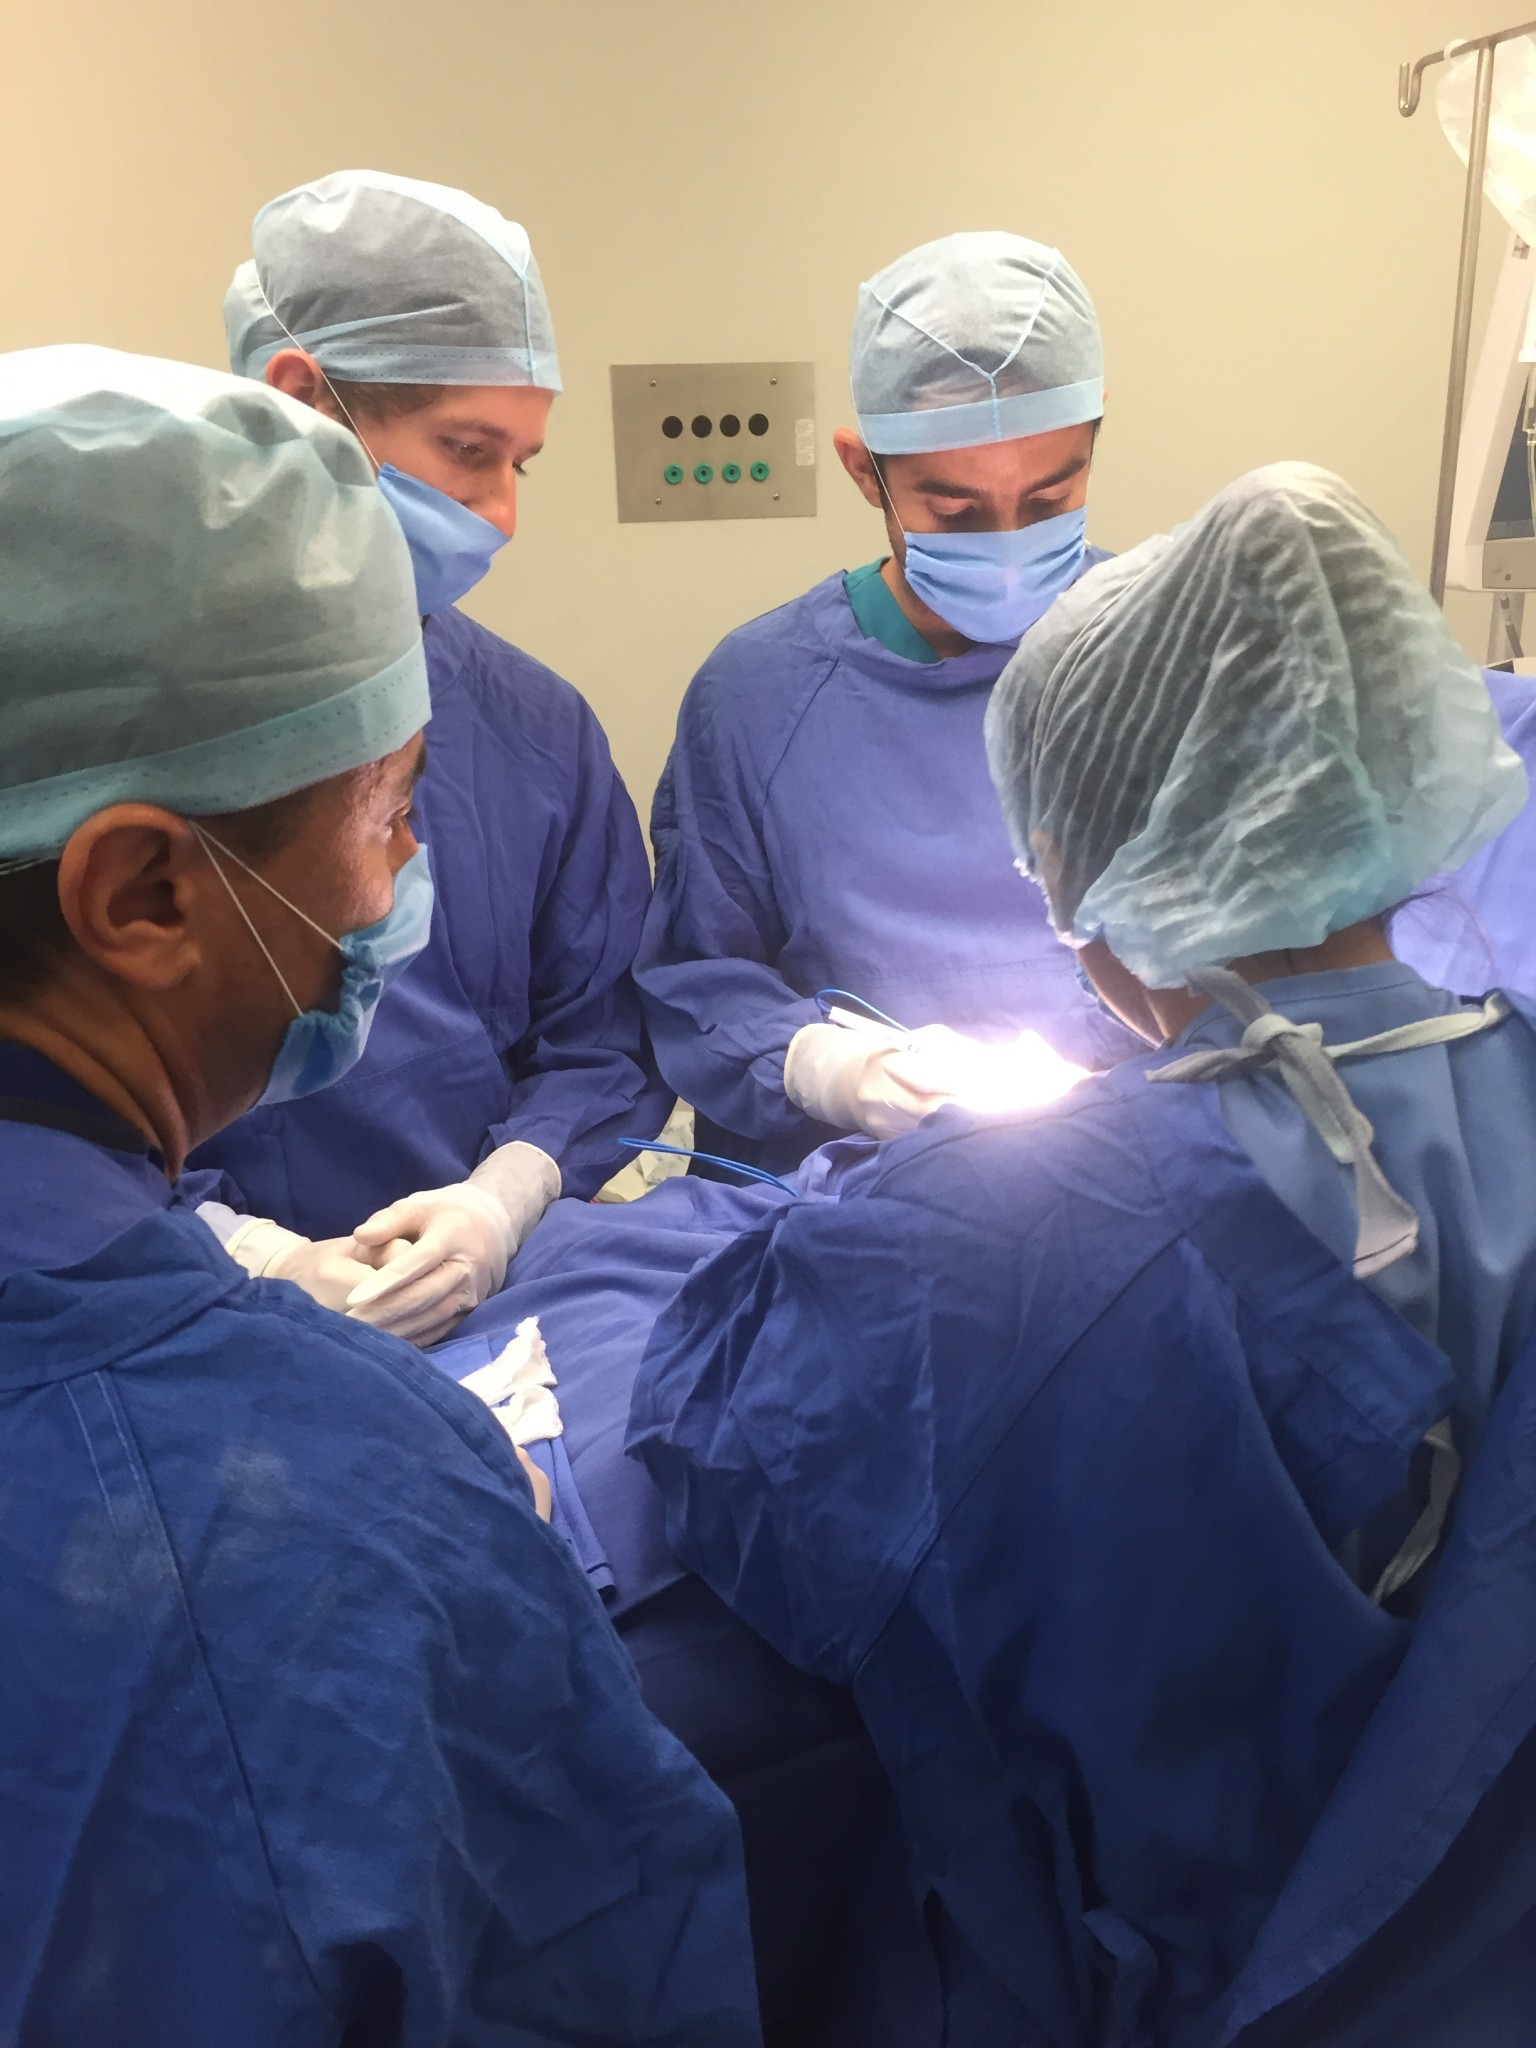 Surgical team in blue scrubs., doing surgery.